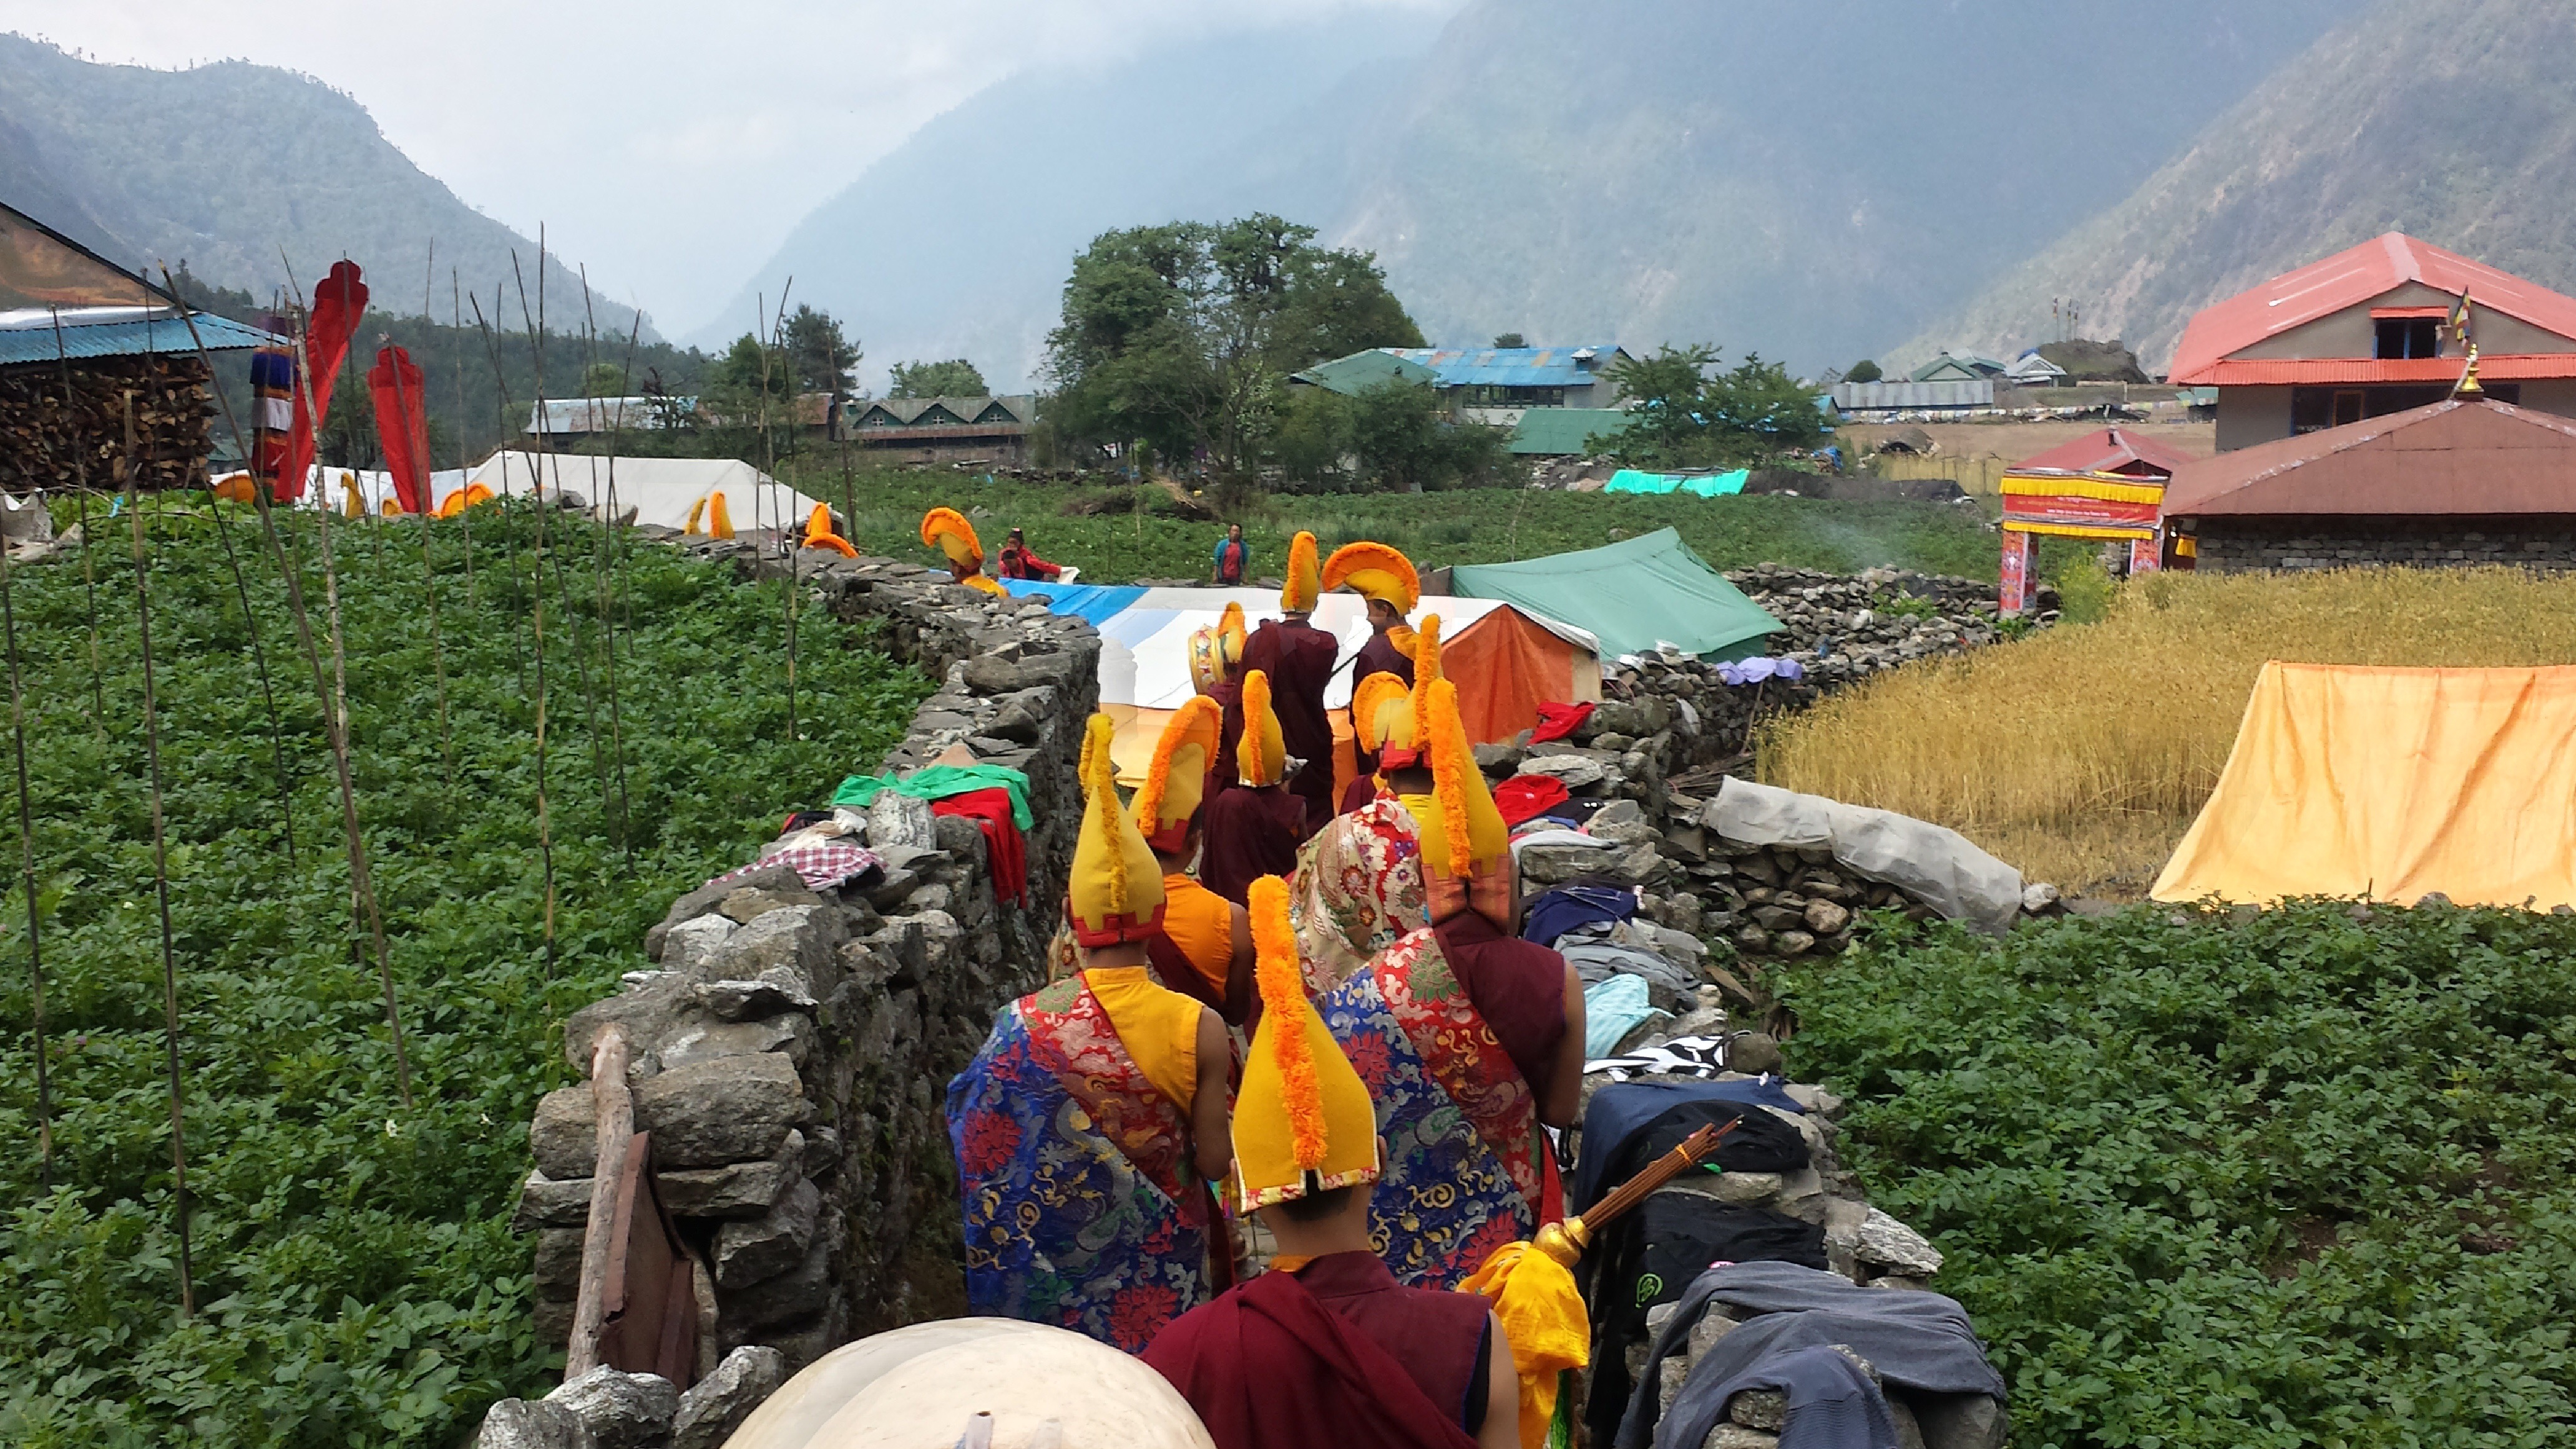 Dumjee Festival Lukla - Everest Base Camp Trek (3)